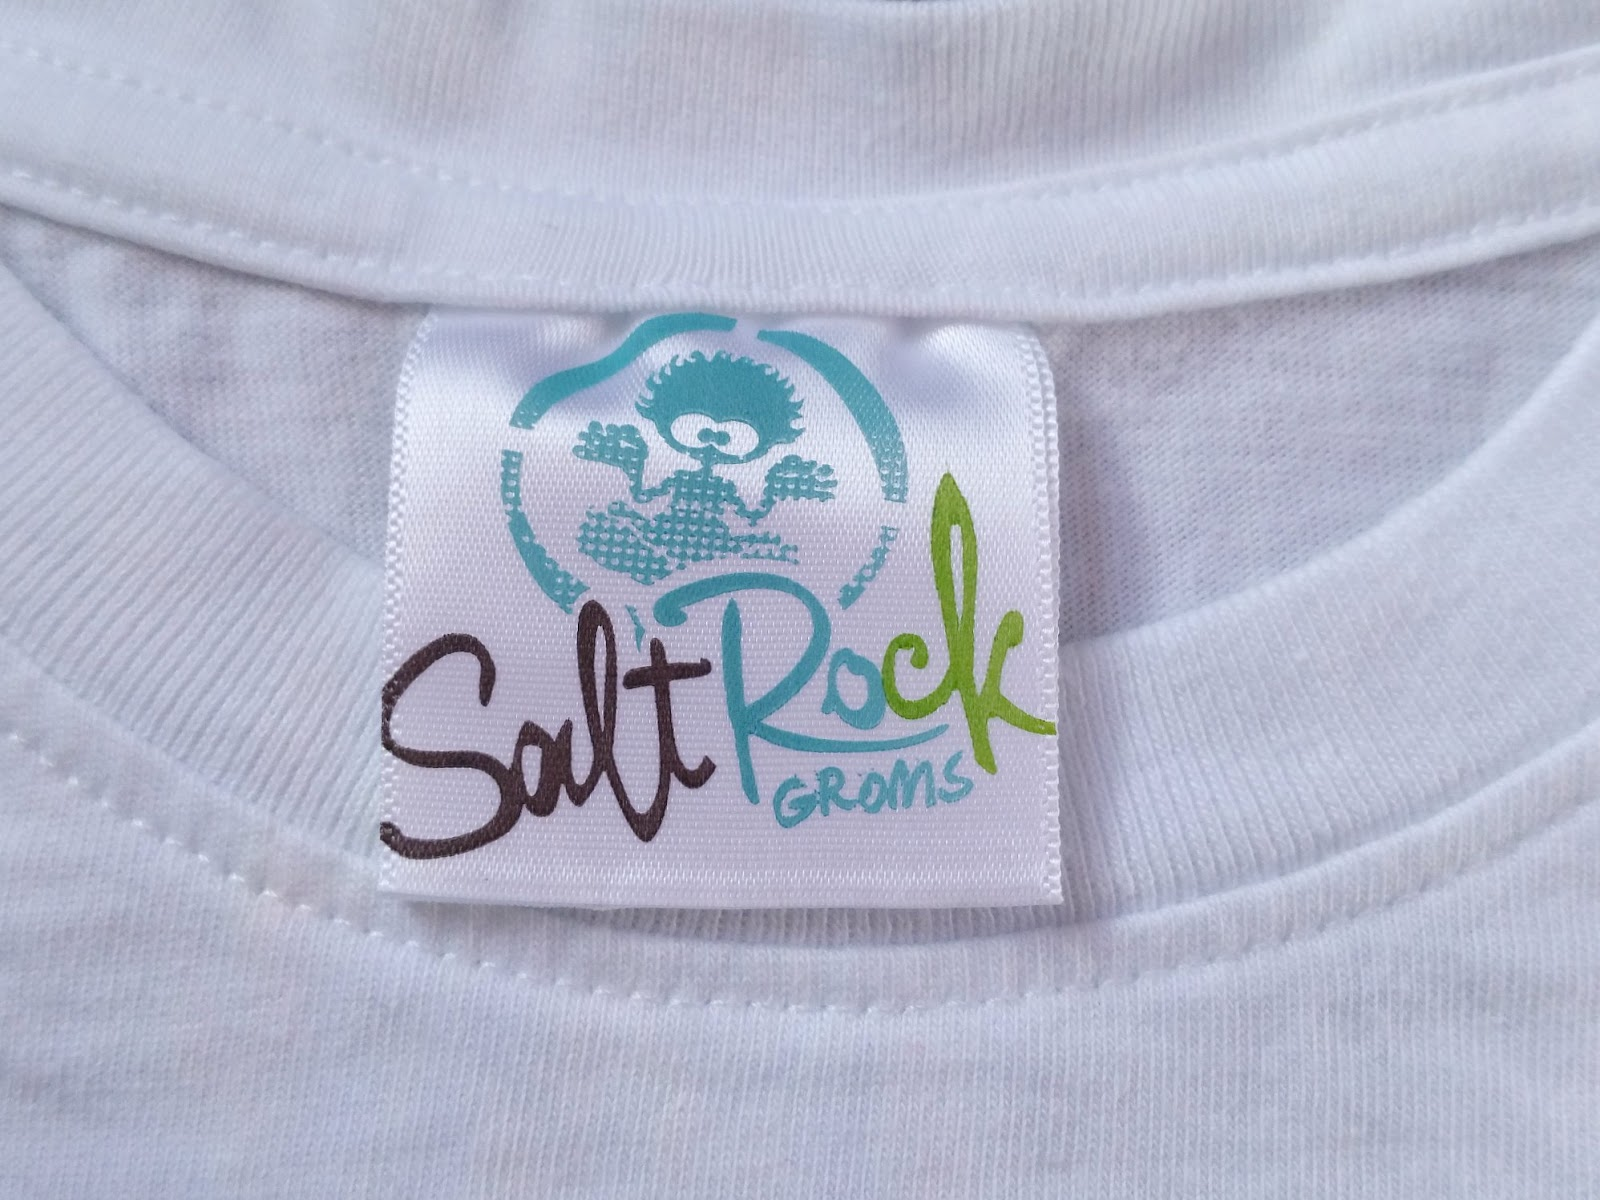 Saltrock Clothing, Surfer clothes for Kids, children fashion